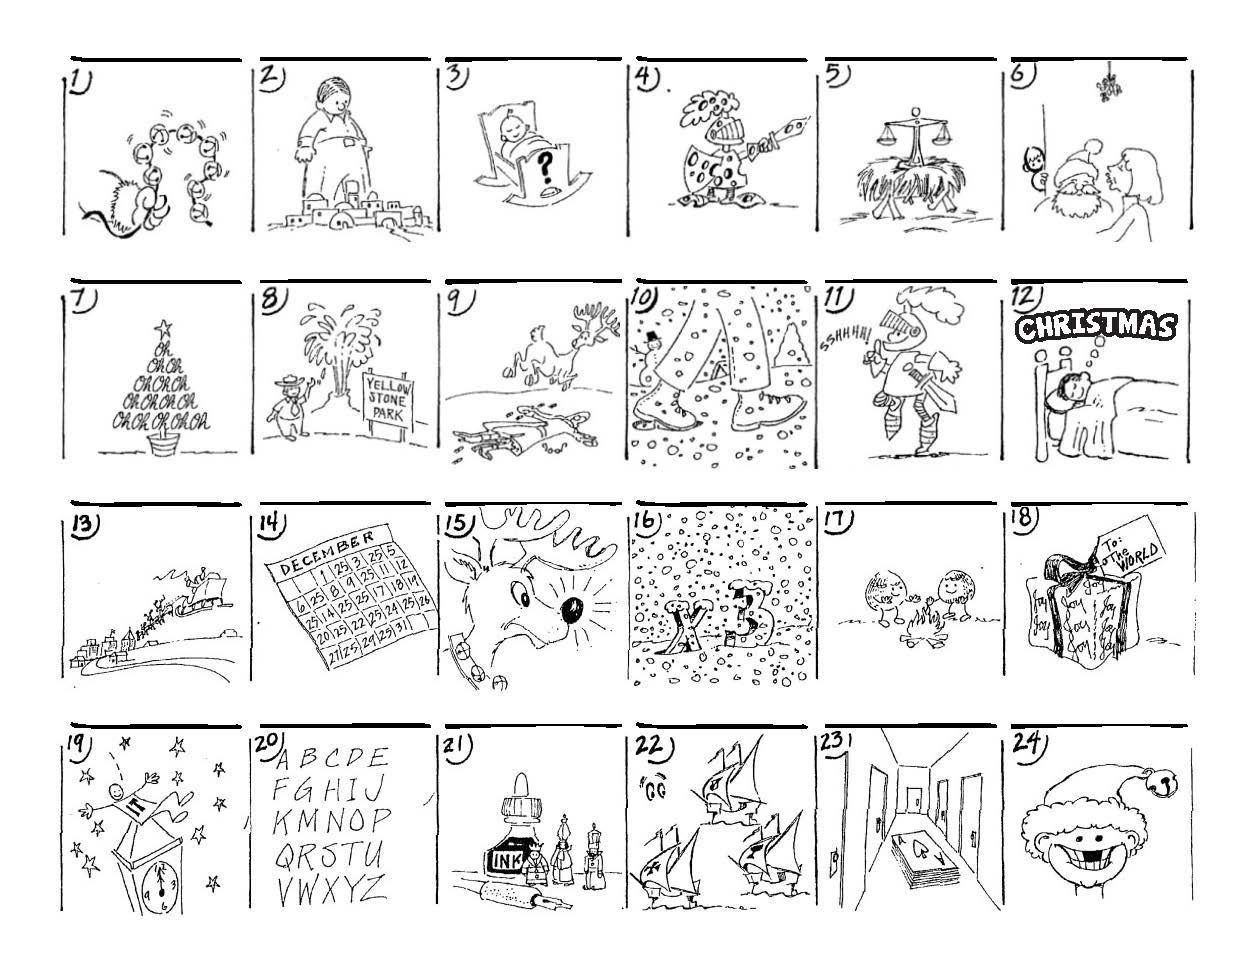 worksheet Rebus Puzzle Worksheets workbooks rebus brain teasers worksheets free printable christmas carol puzzles child proof puzzle and worksheets